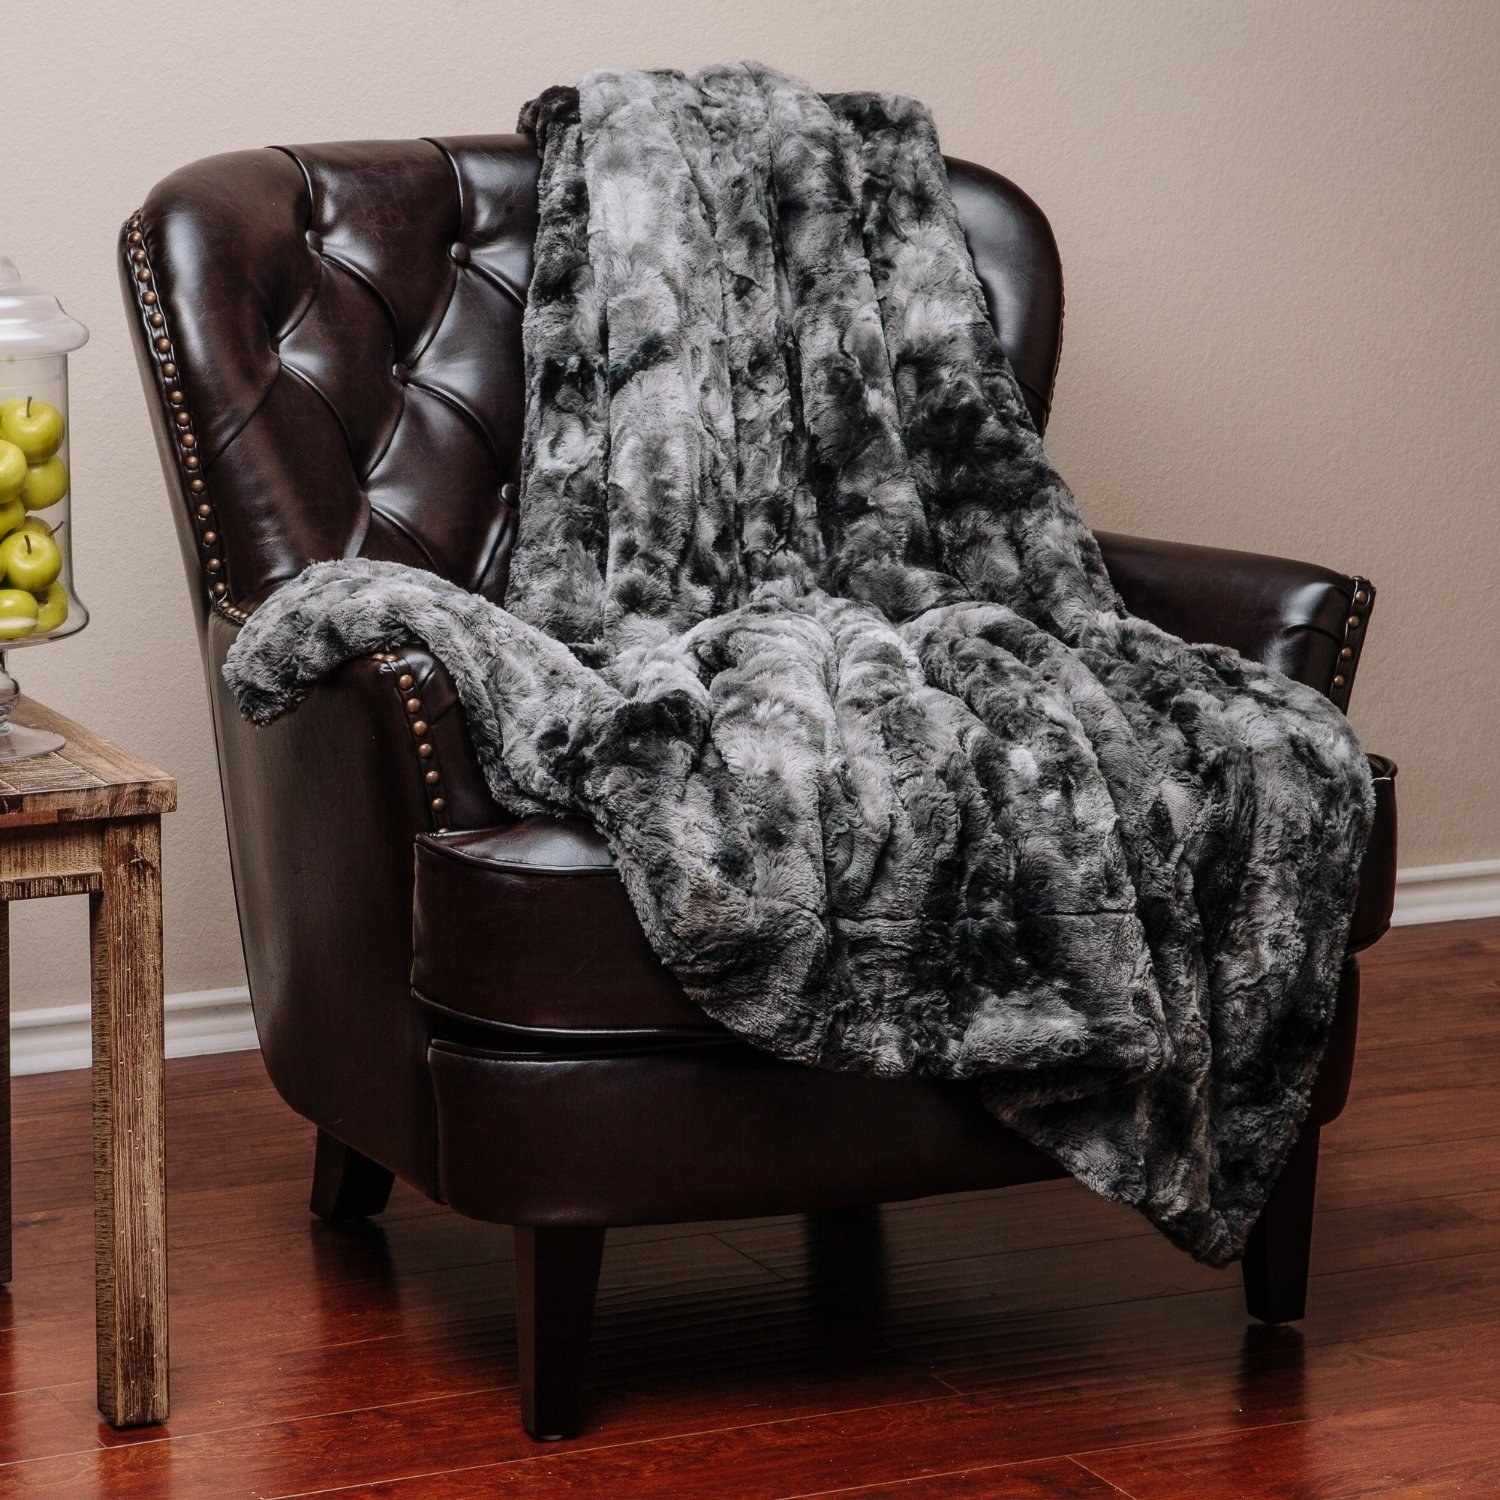 leather arm chair with faux fur gray blanket on it